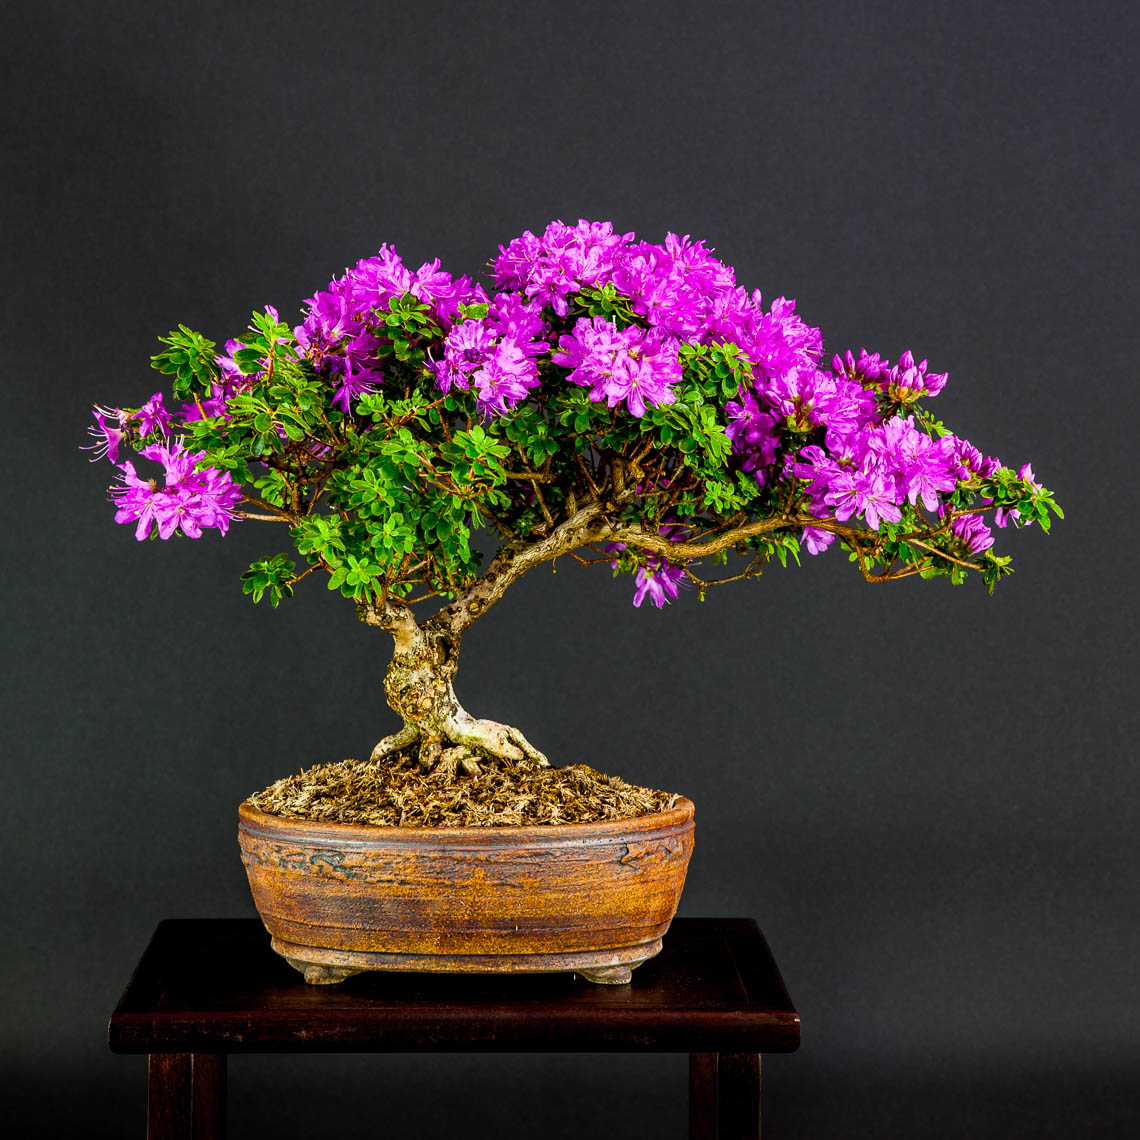 20160501_Bonsai-76-edit